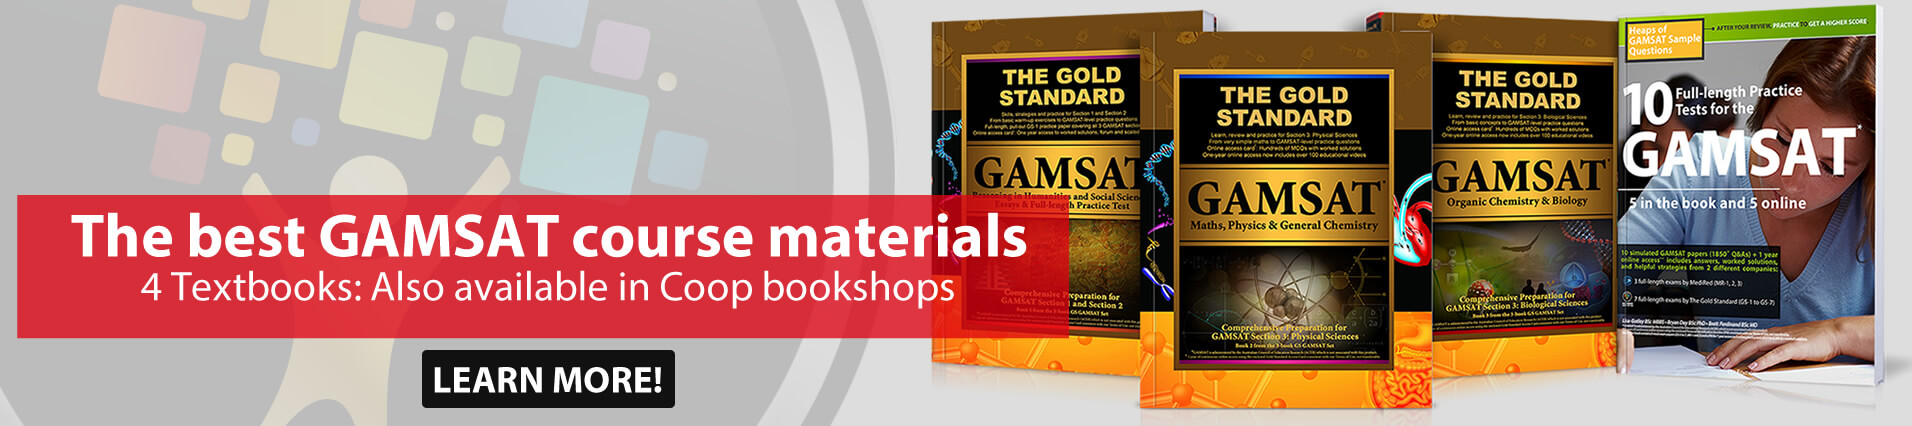 GAMSAT Courses Brisbane: Learn, Review and Practice Today with Gold